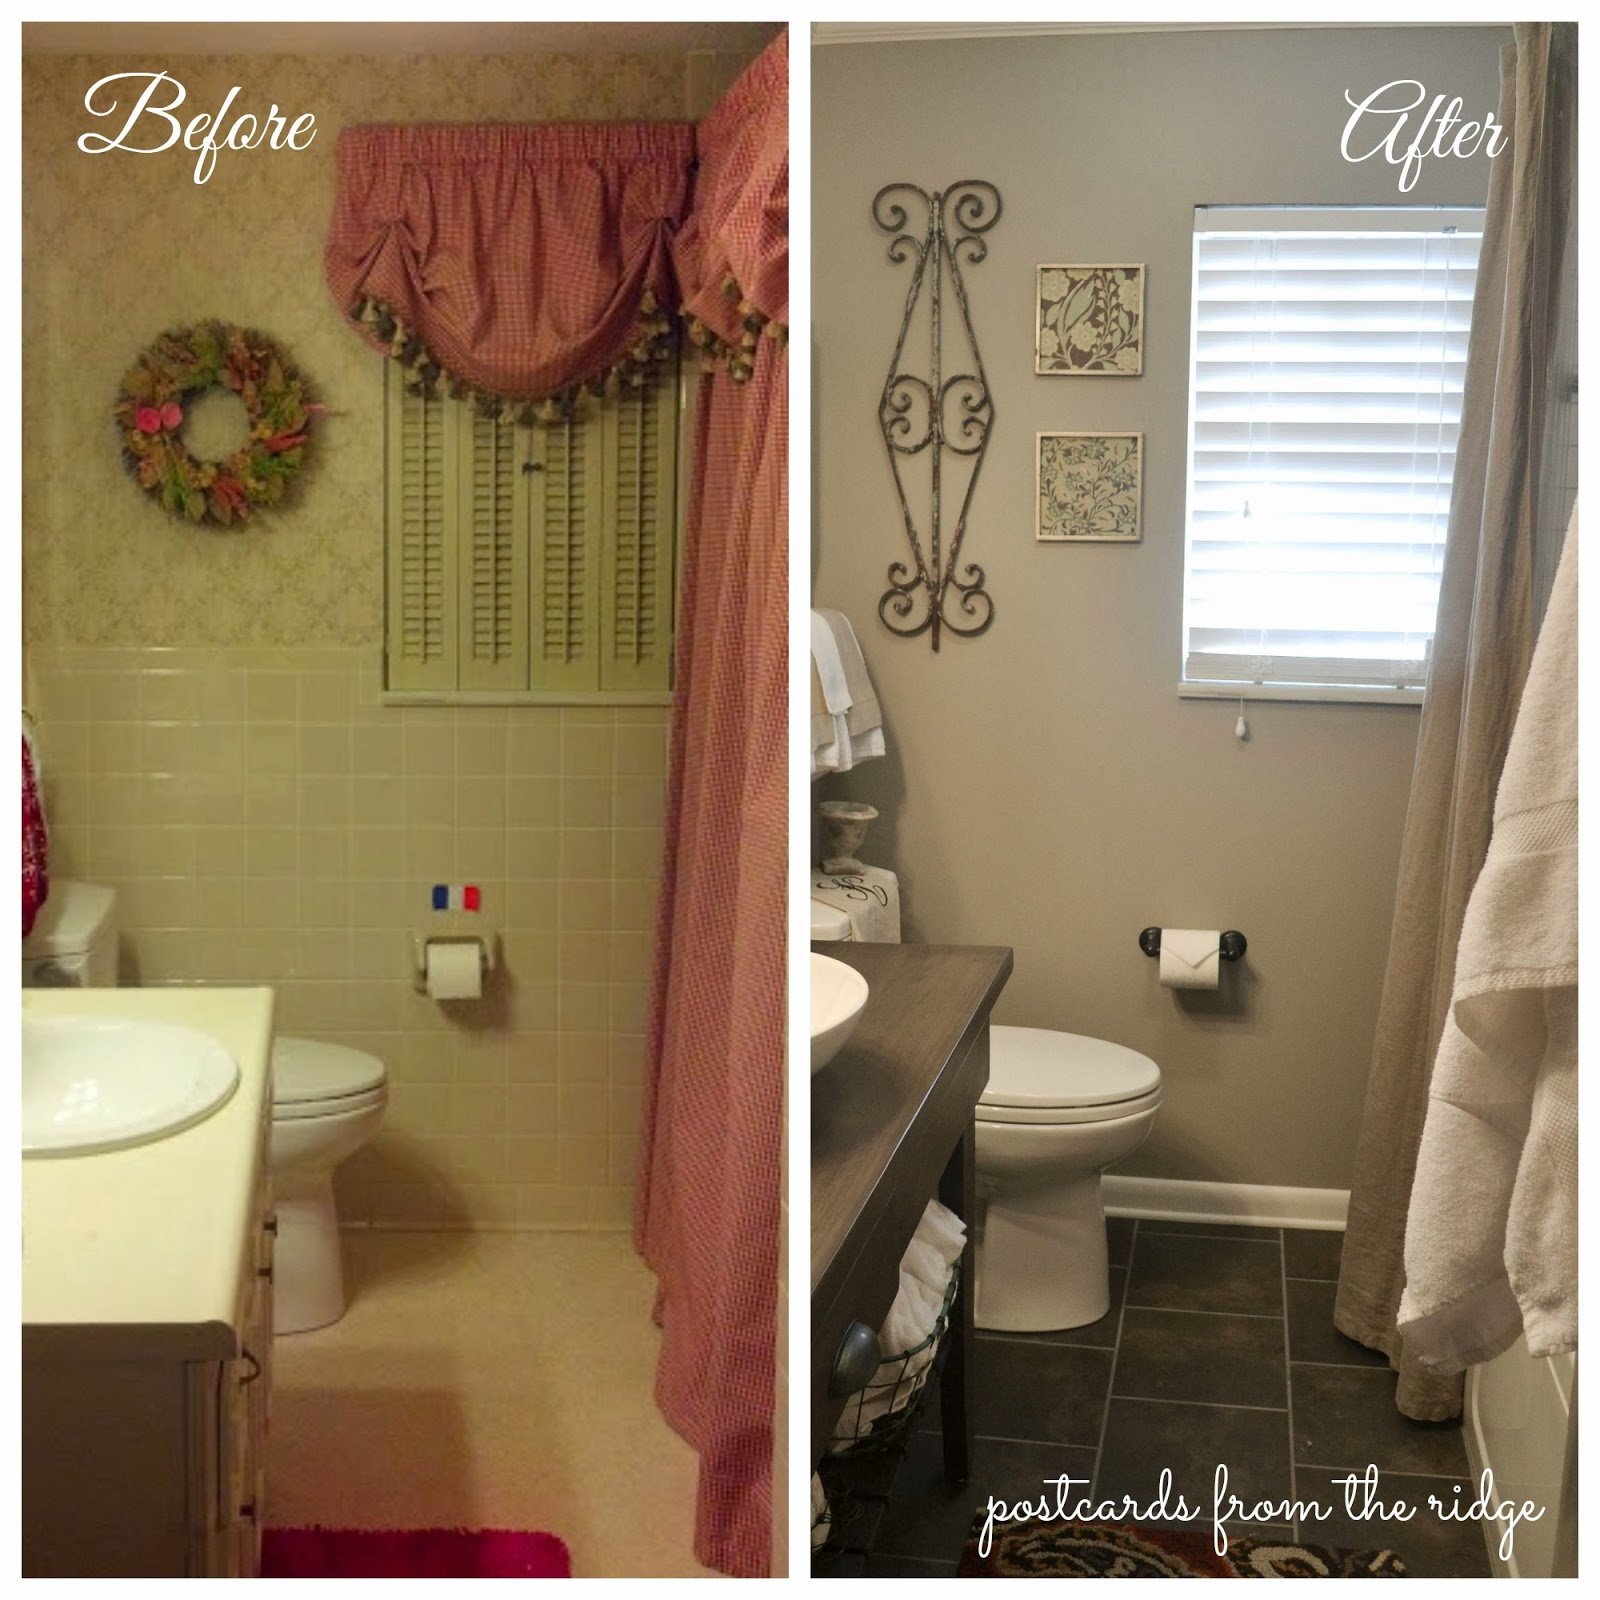 Hallway Bathroom Remodel Before amp After  A Blog About